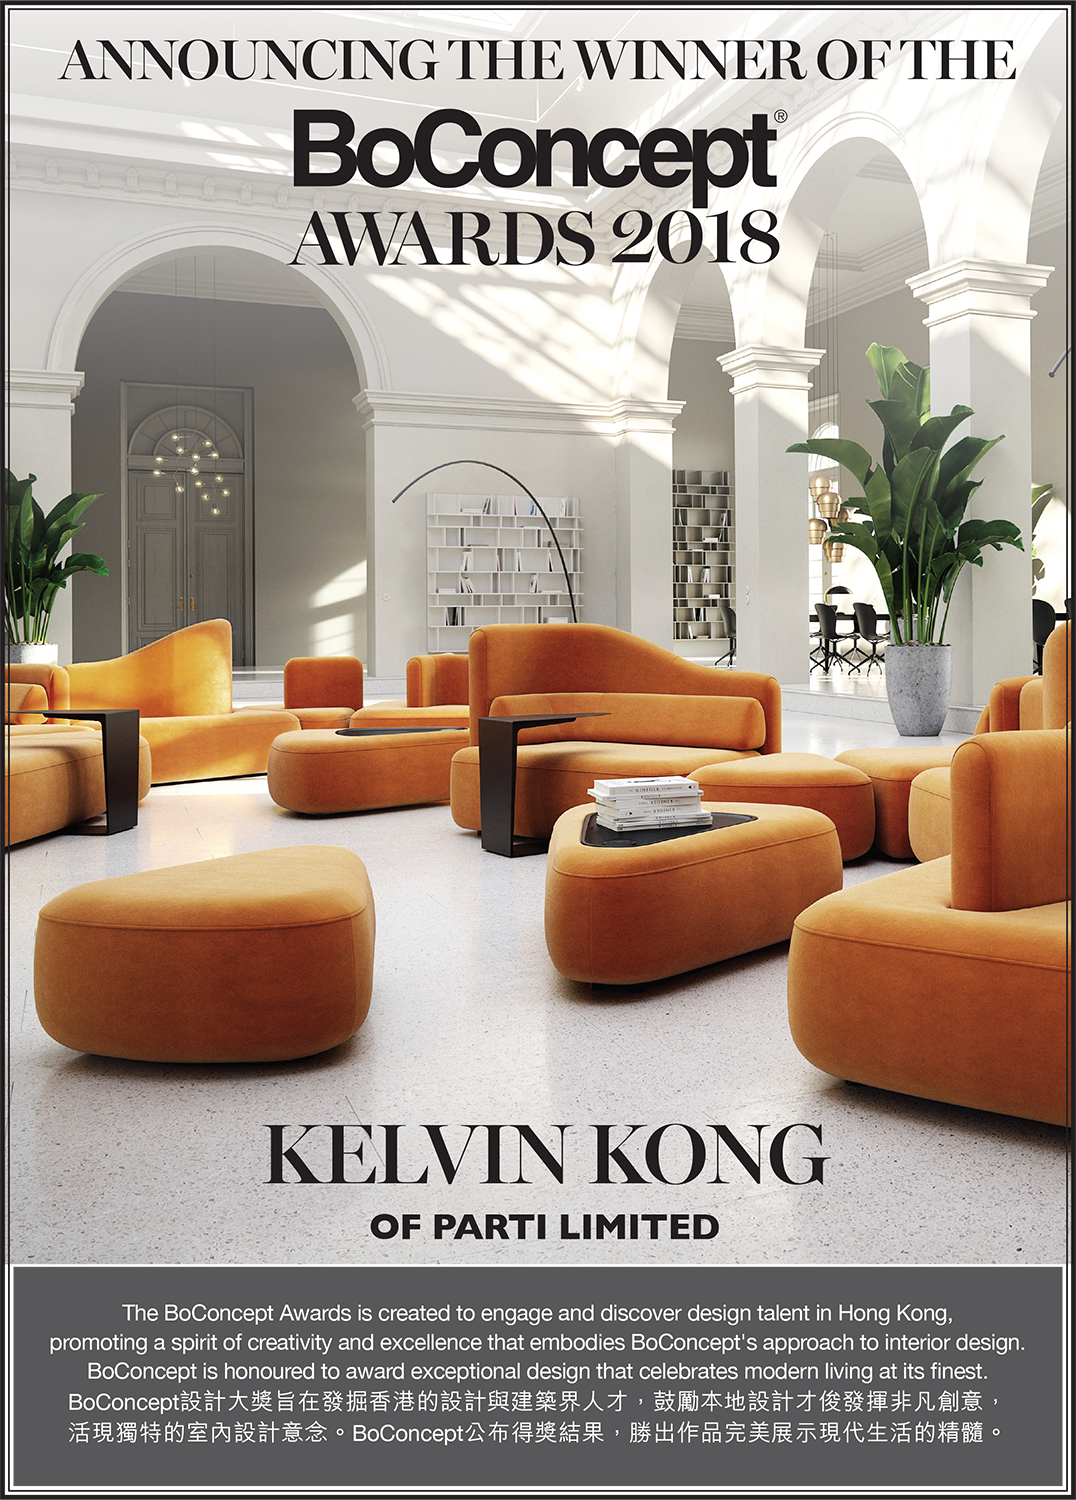 March 29, 2019 - BOCONCEPT AWARDS 2018We are extremely honoured to receive the BoConcept Awards 2018 hosted by BoConcept Hong Kong in partnership with Home Journal!Our entry was selected by a panel of judges comprised of BoConcept Hong Kong, Home Journal and Sun Hung Kai Real Estate Agency Limited. The design will be installed and showcased at the HomeSquare Sha Tin atrium in June 2019 and enjoy coverage across Home Journal's print, online and social media platforms. Stay tuned for updates!